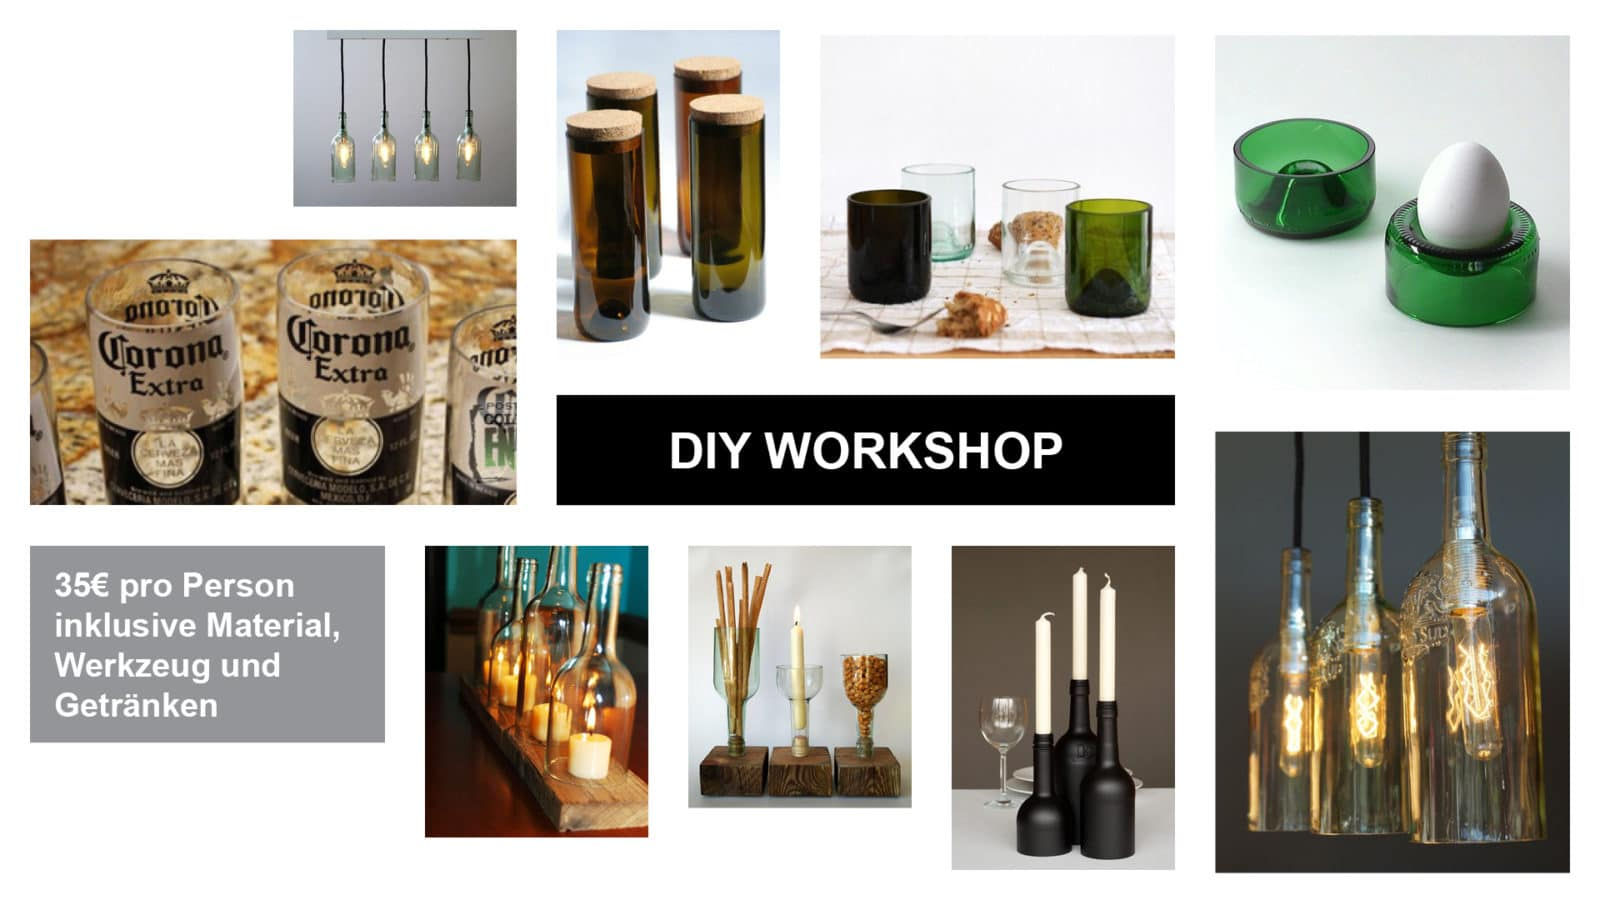 Kurs diy workshop interior design accessoires aus for Kurs interior design